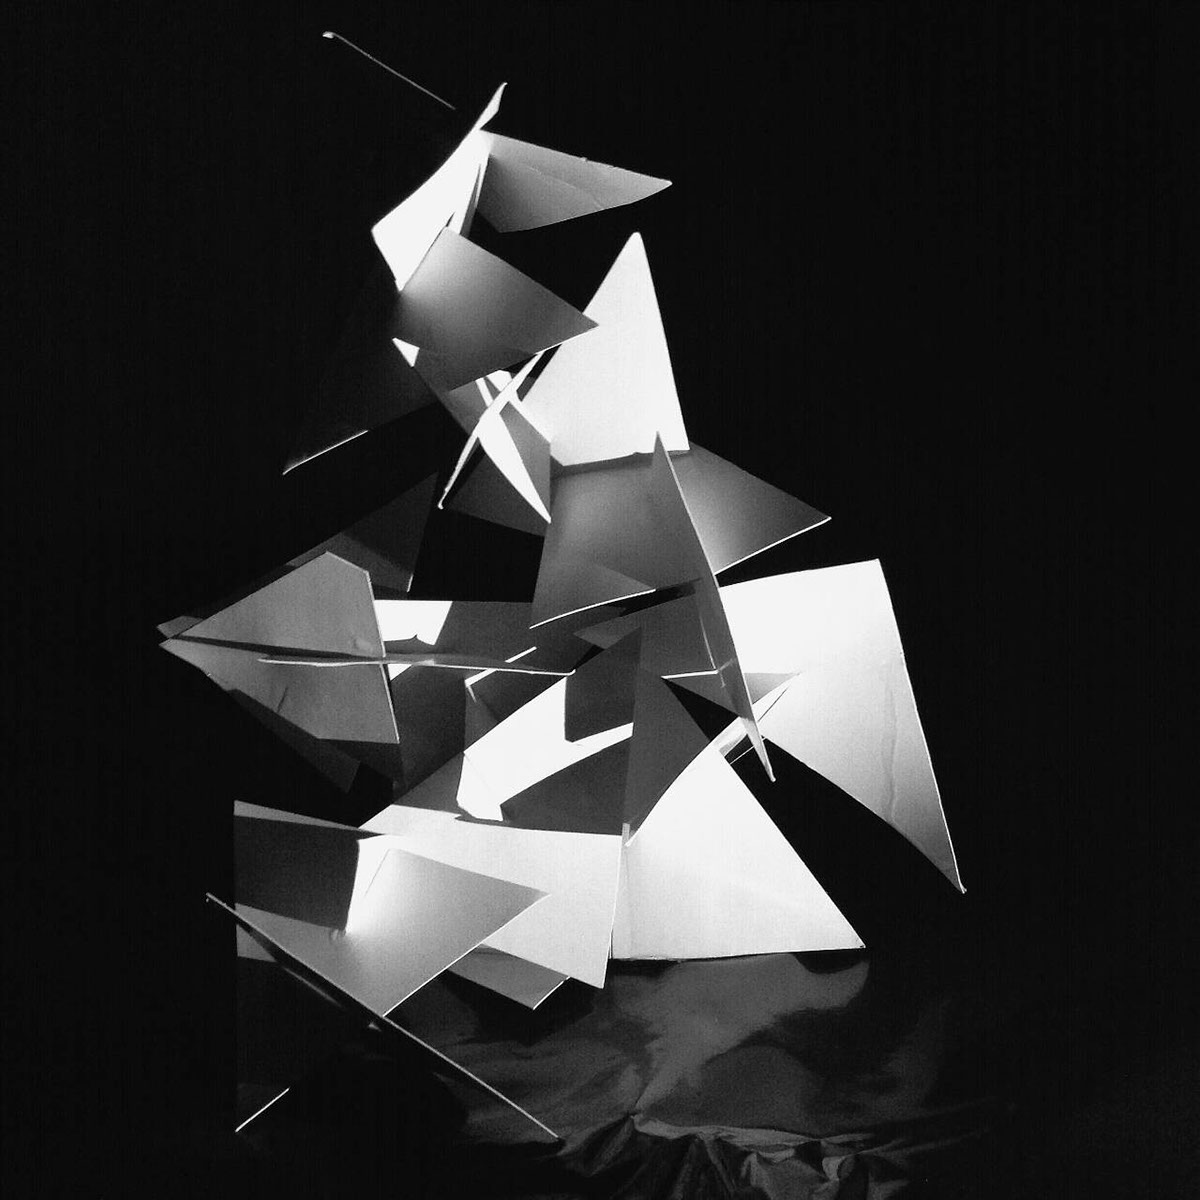 architectural model exploration Space  creative spatial Quality